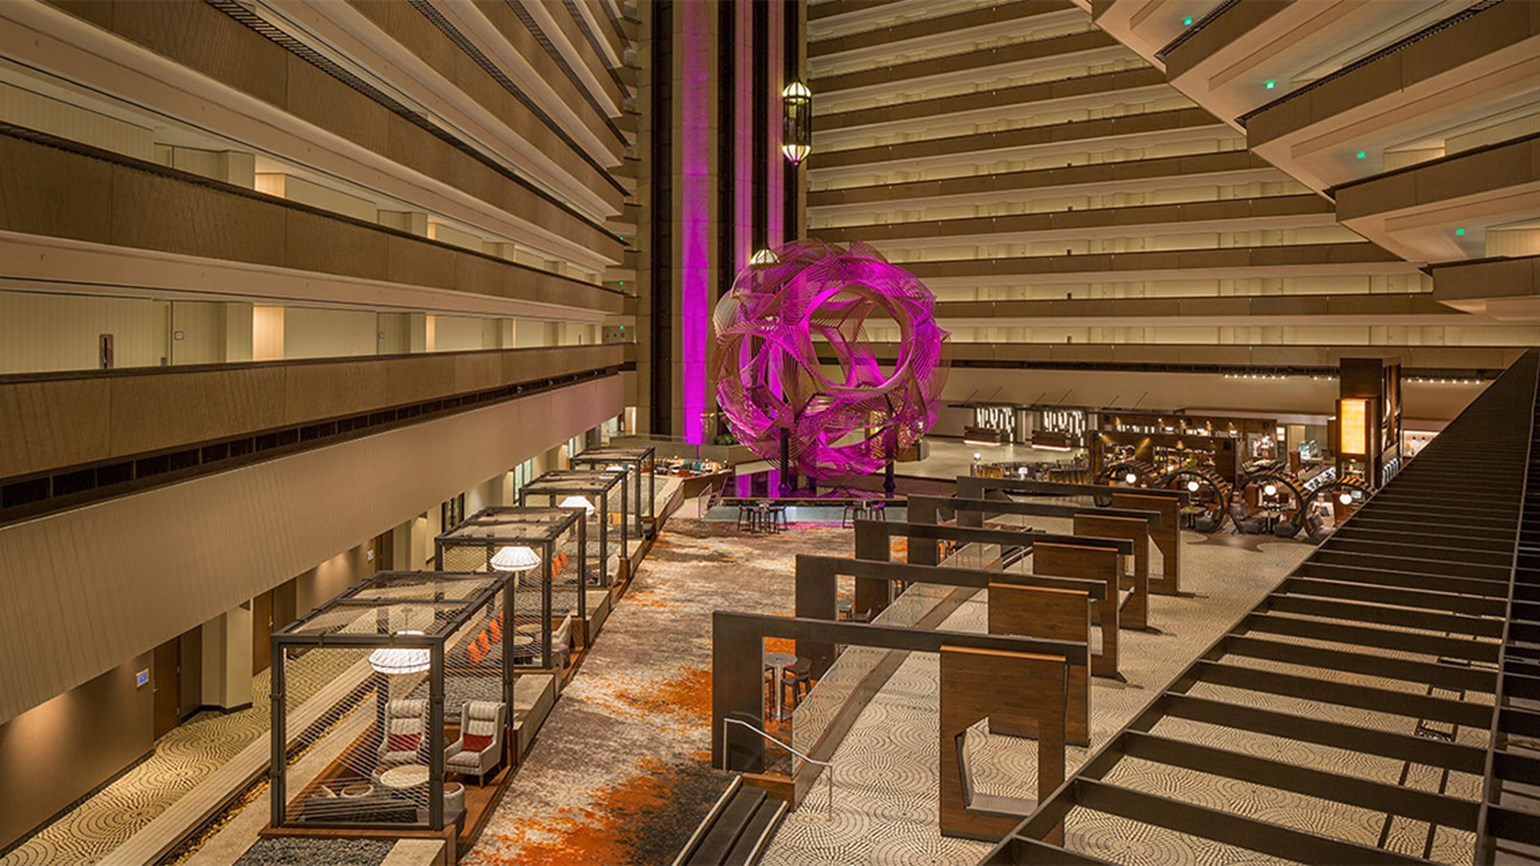 Hyatt Regency San Francisco completes renovation